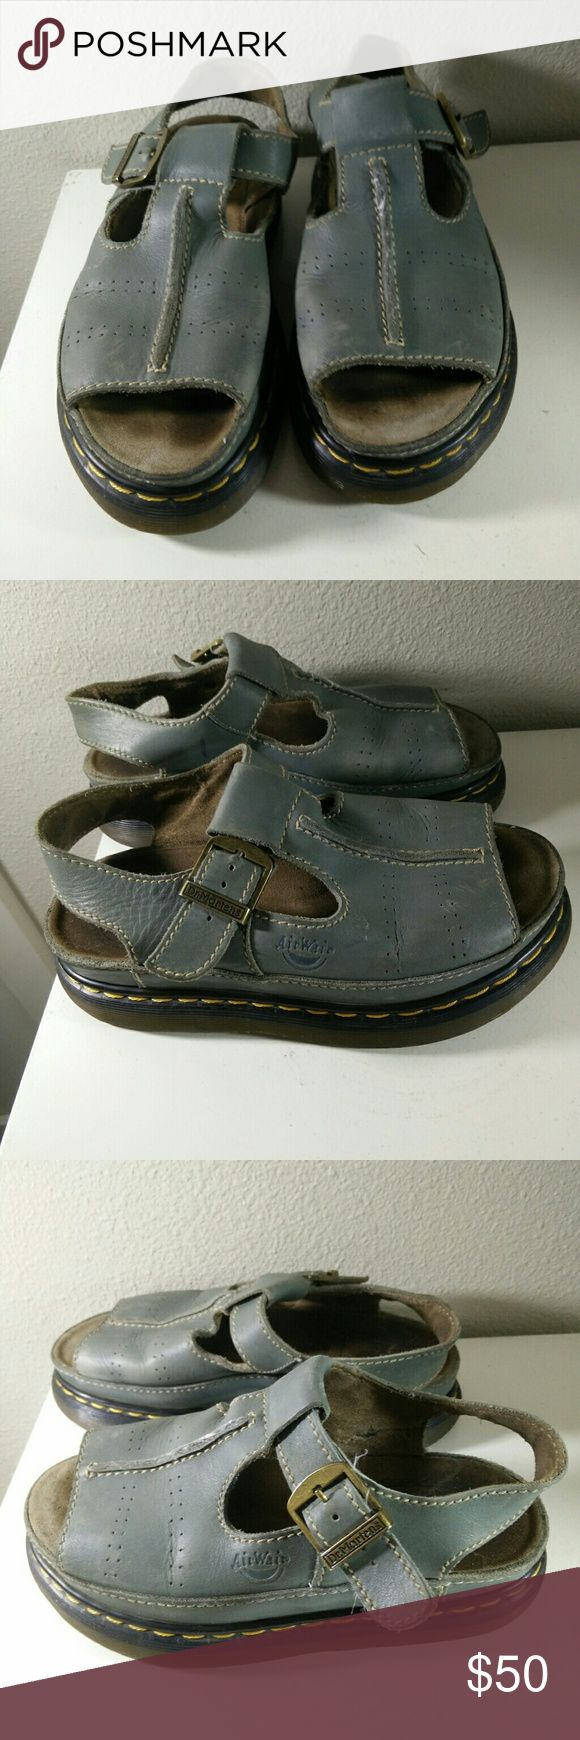 Dr. Martens Air Wair Sandals Blue Gray Slingback Great pair of vintage sandals - showing signs of wear/imperfections in places but still in good wearable condition - Made in England not China!  Perfect for summer!!! Dr. Martens Shoes Sandals